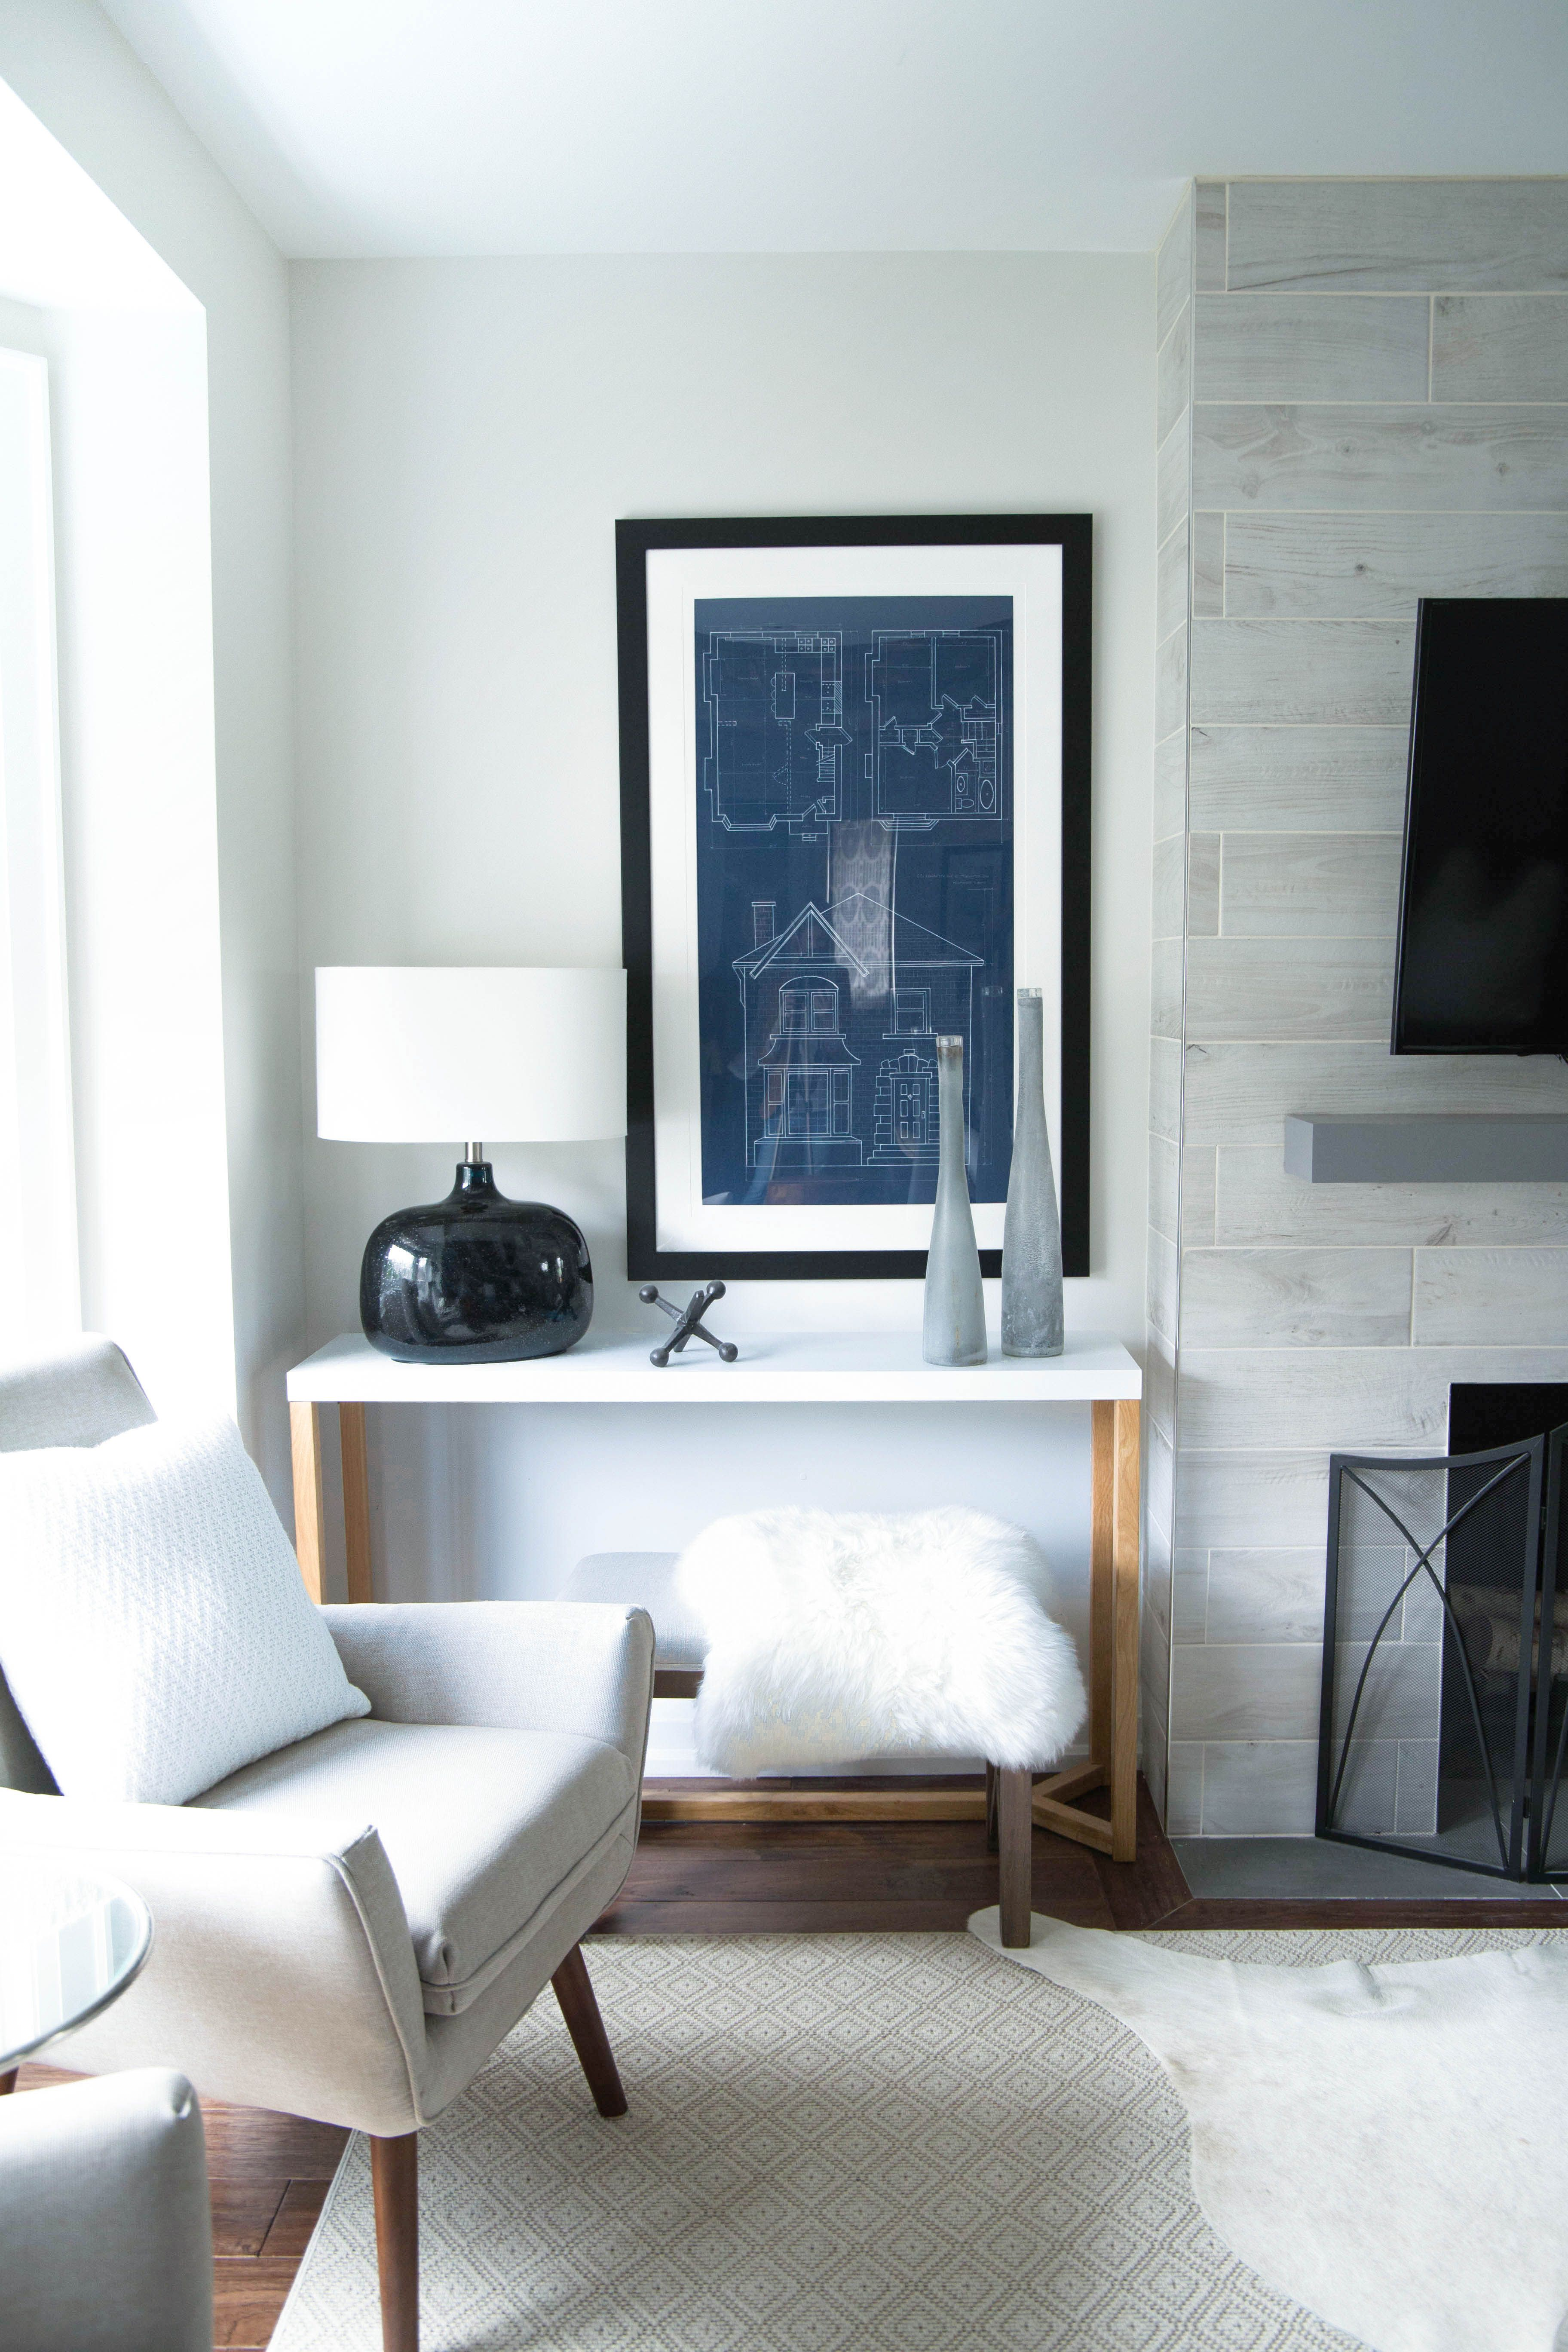 Property Brothers Family Room Reveal by Karin Bennett Designs ...